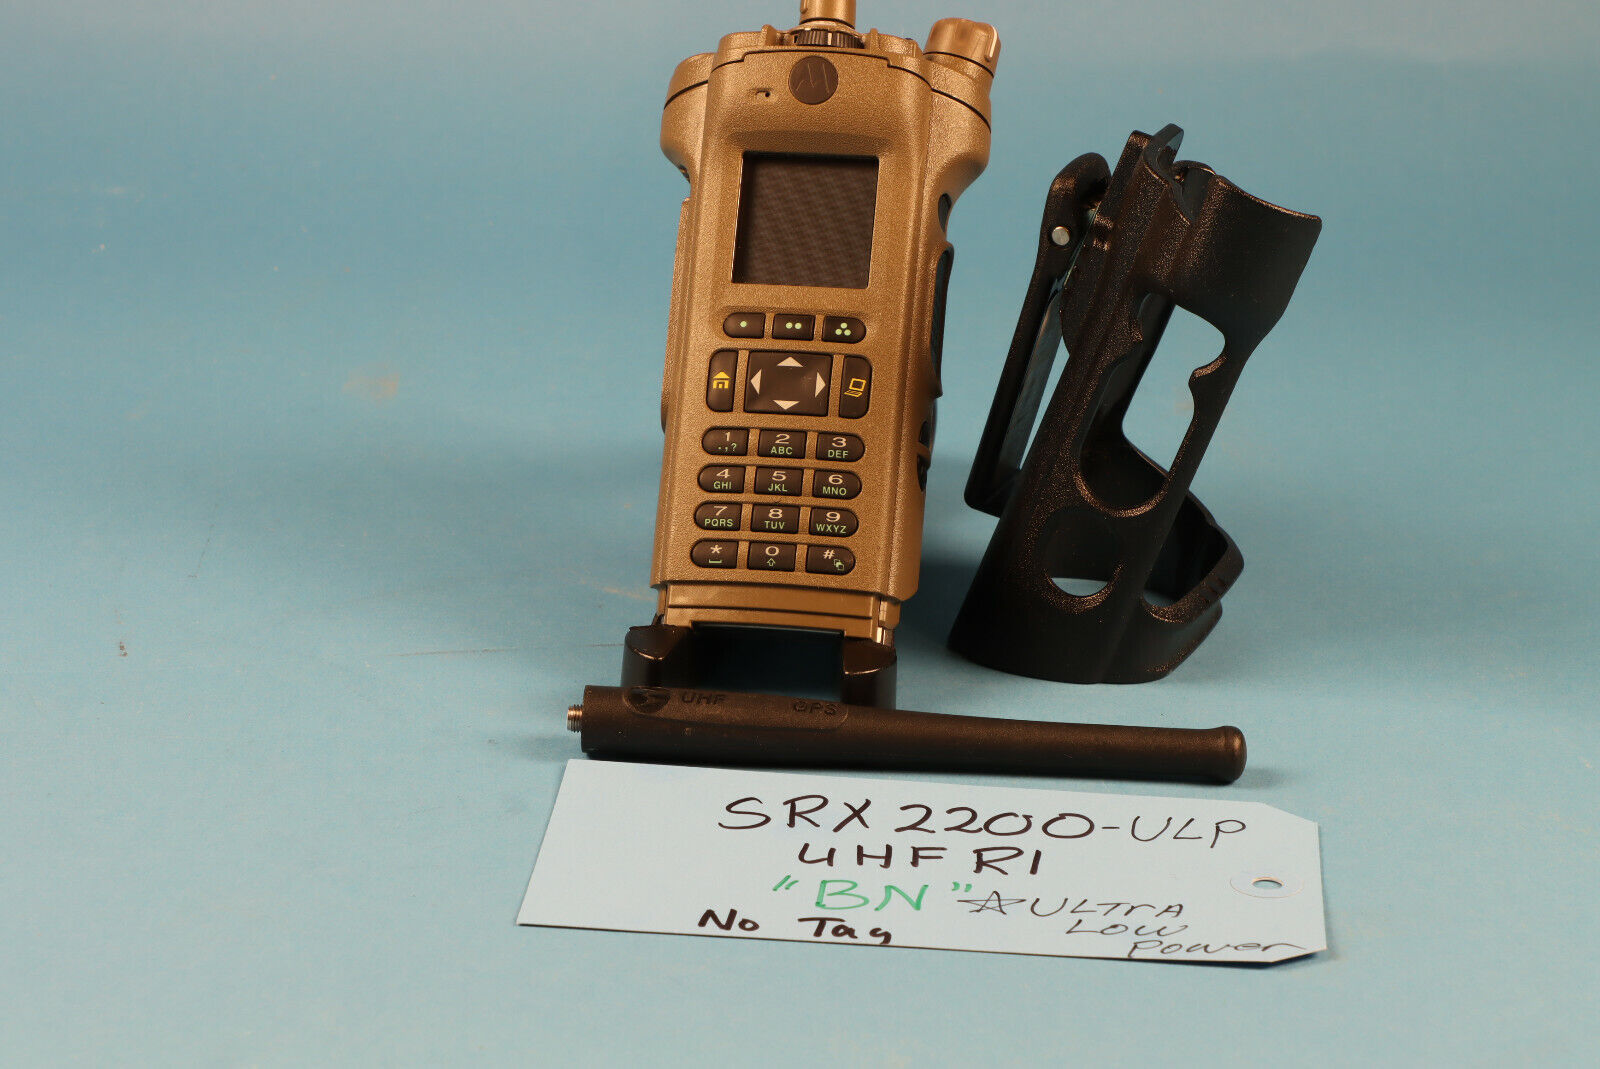 Motorola SRX2200-ULP BN UHF R1 Bluetooth ADP DES AES2563.5 *No Tags. Available Now for 1700.00